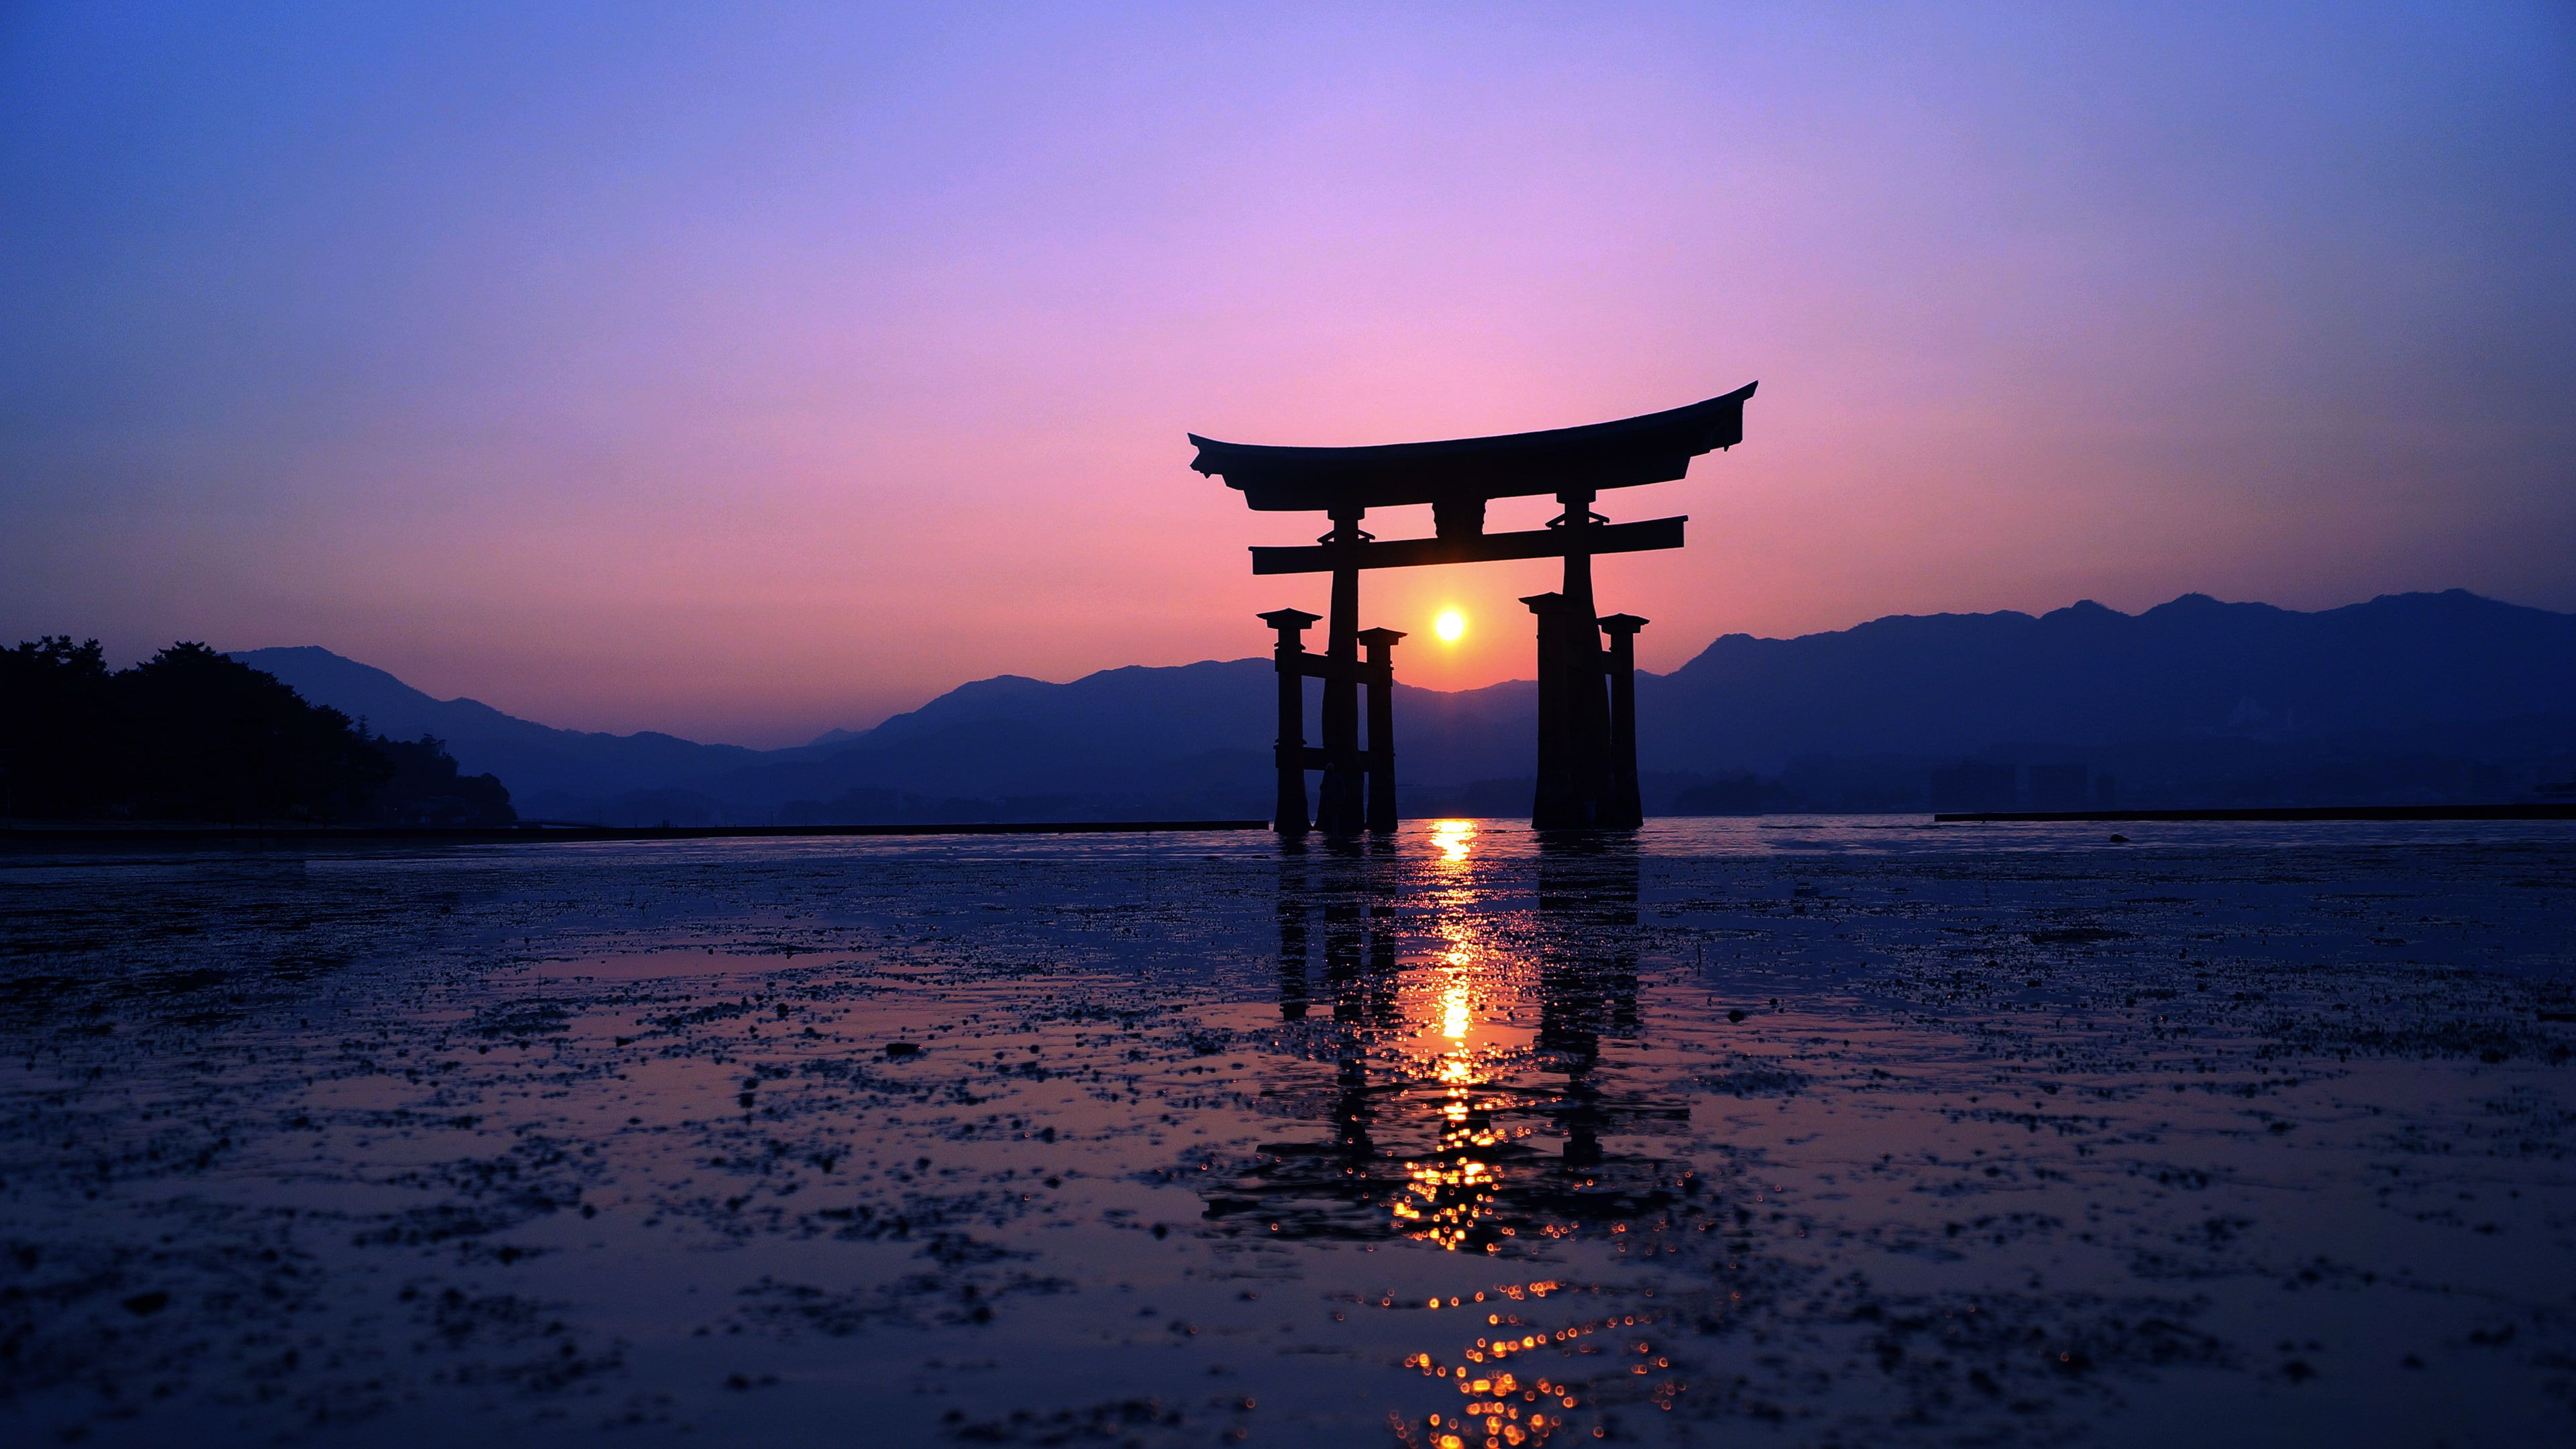 Sunset Sun Evening Purple Torii Sunlight Mountains Photography Japan Water Re Sunset Wallpaper World Wallpaper Computer Wallpaper Desktop Wallpapers